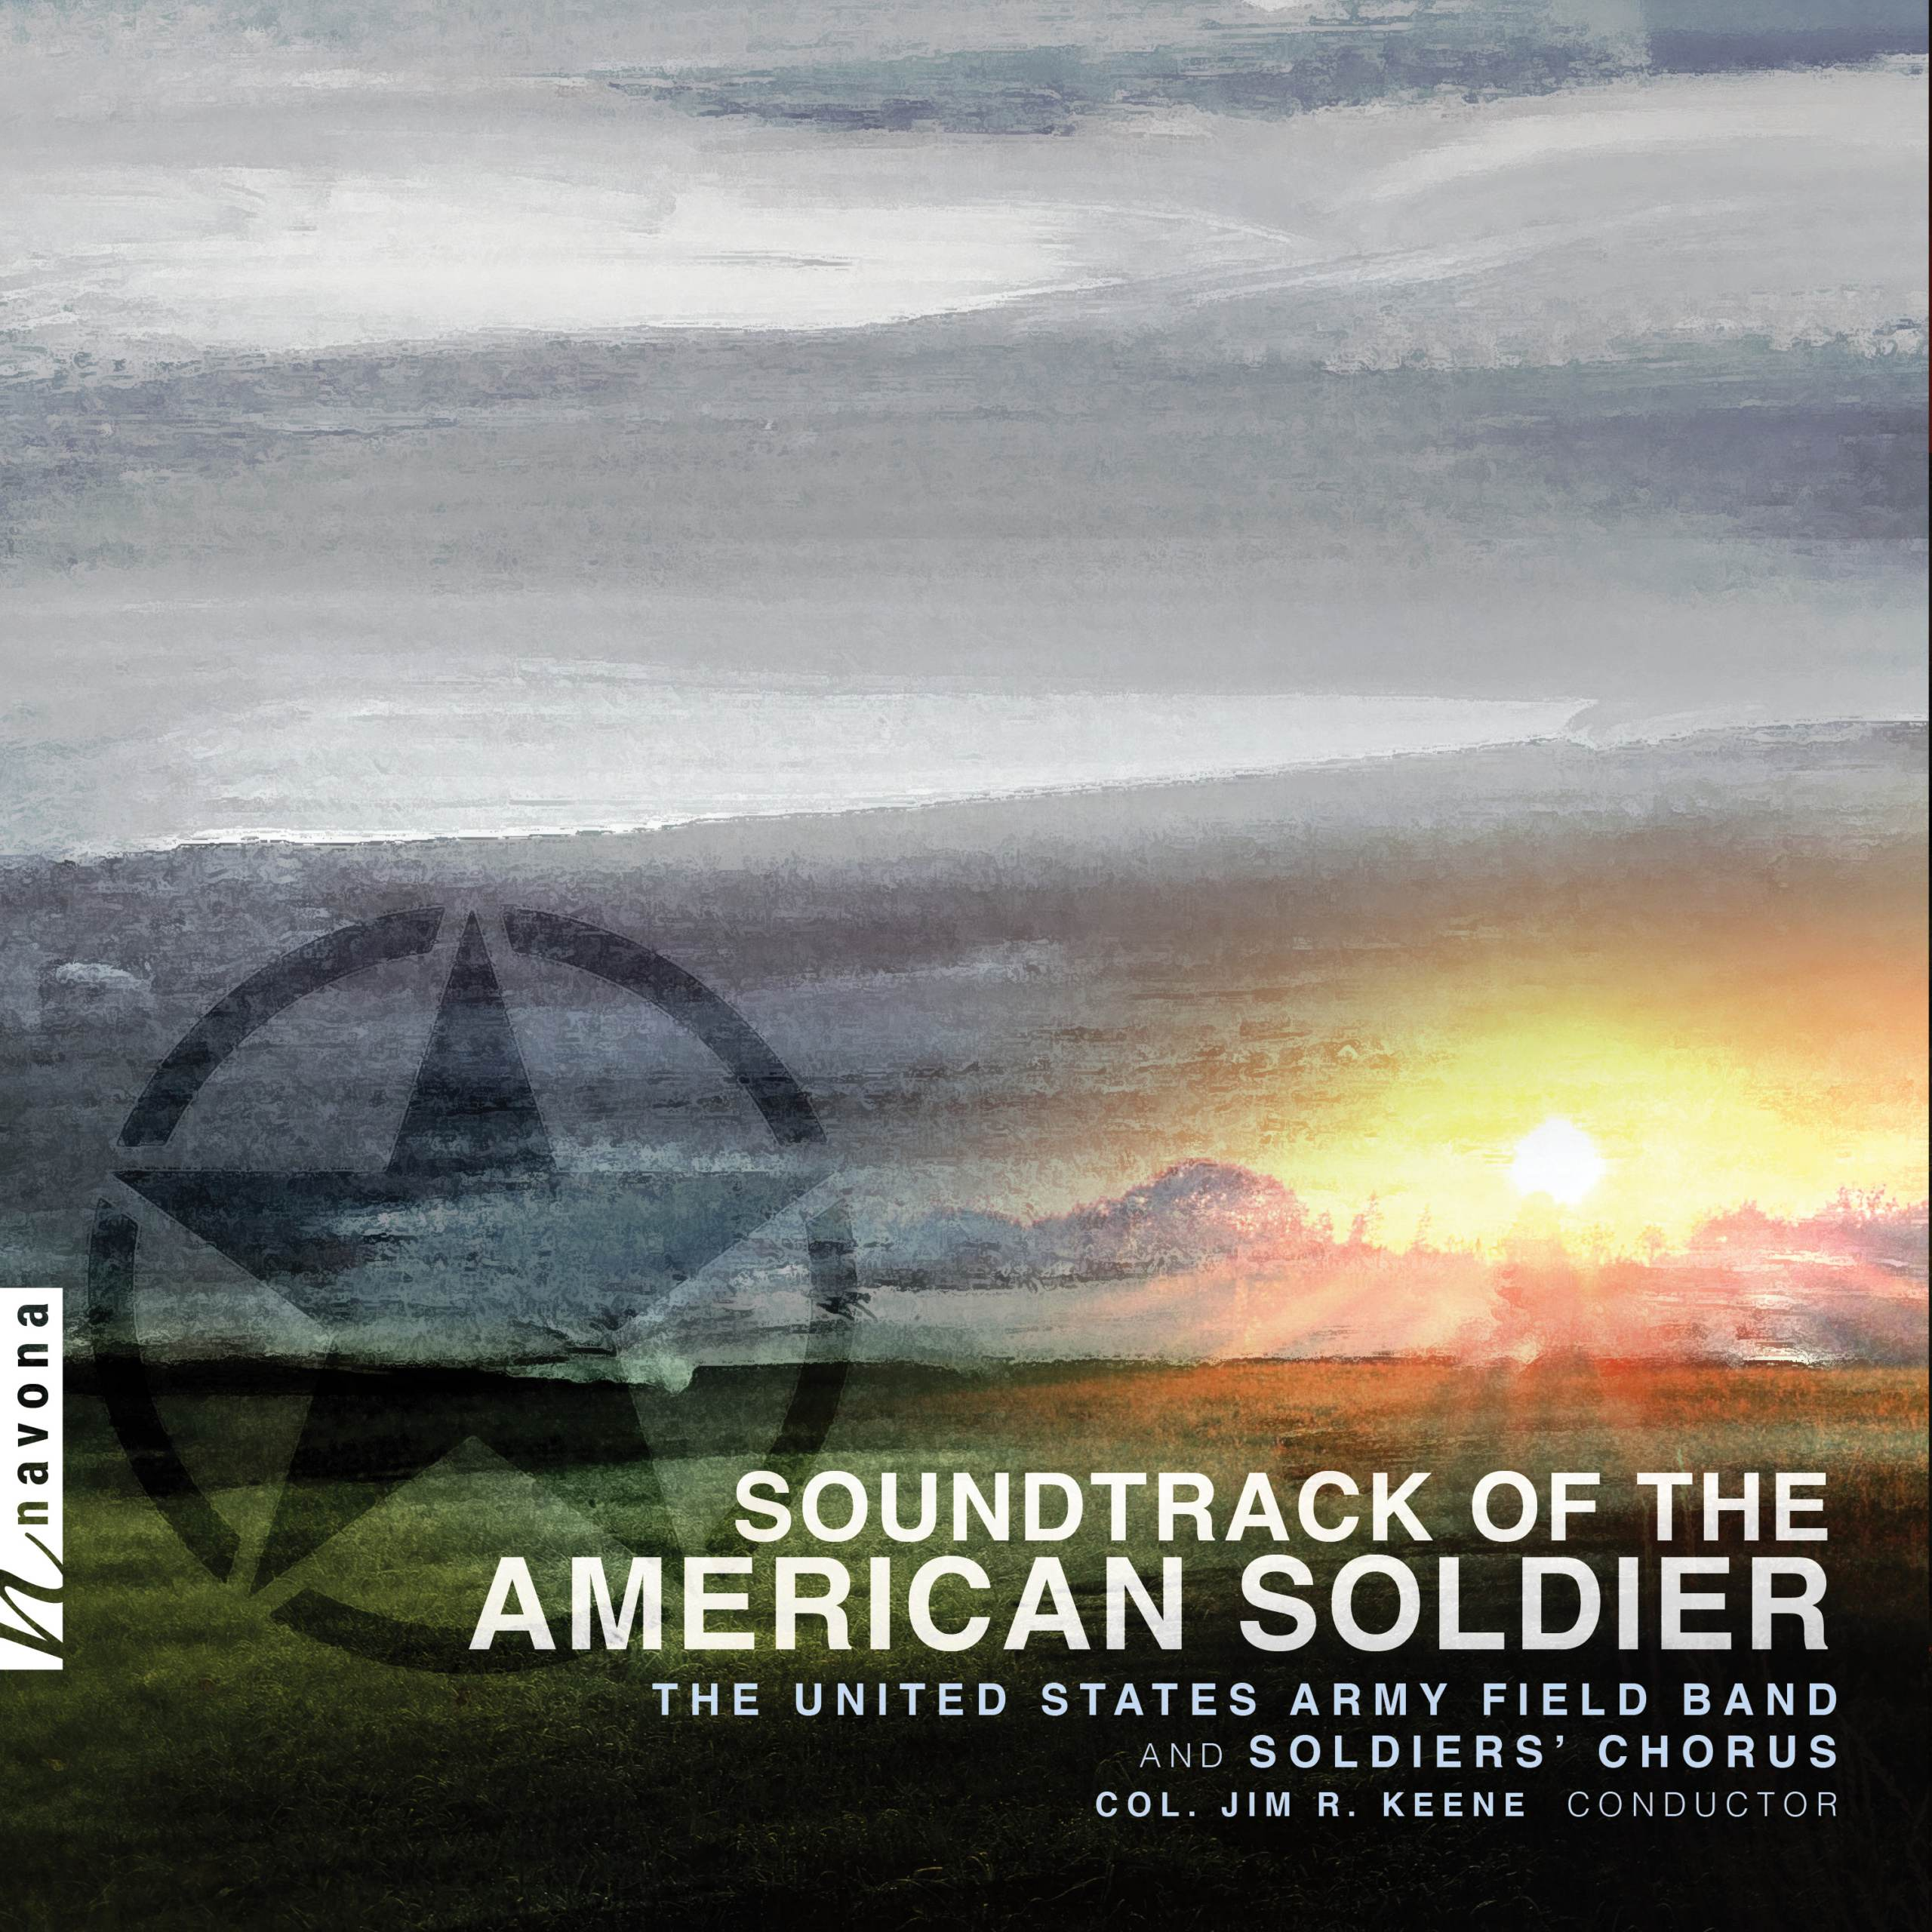 Album cover for Soundtrack of the American Soldier by the U.S. Army Field Band